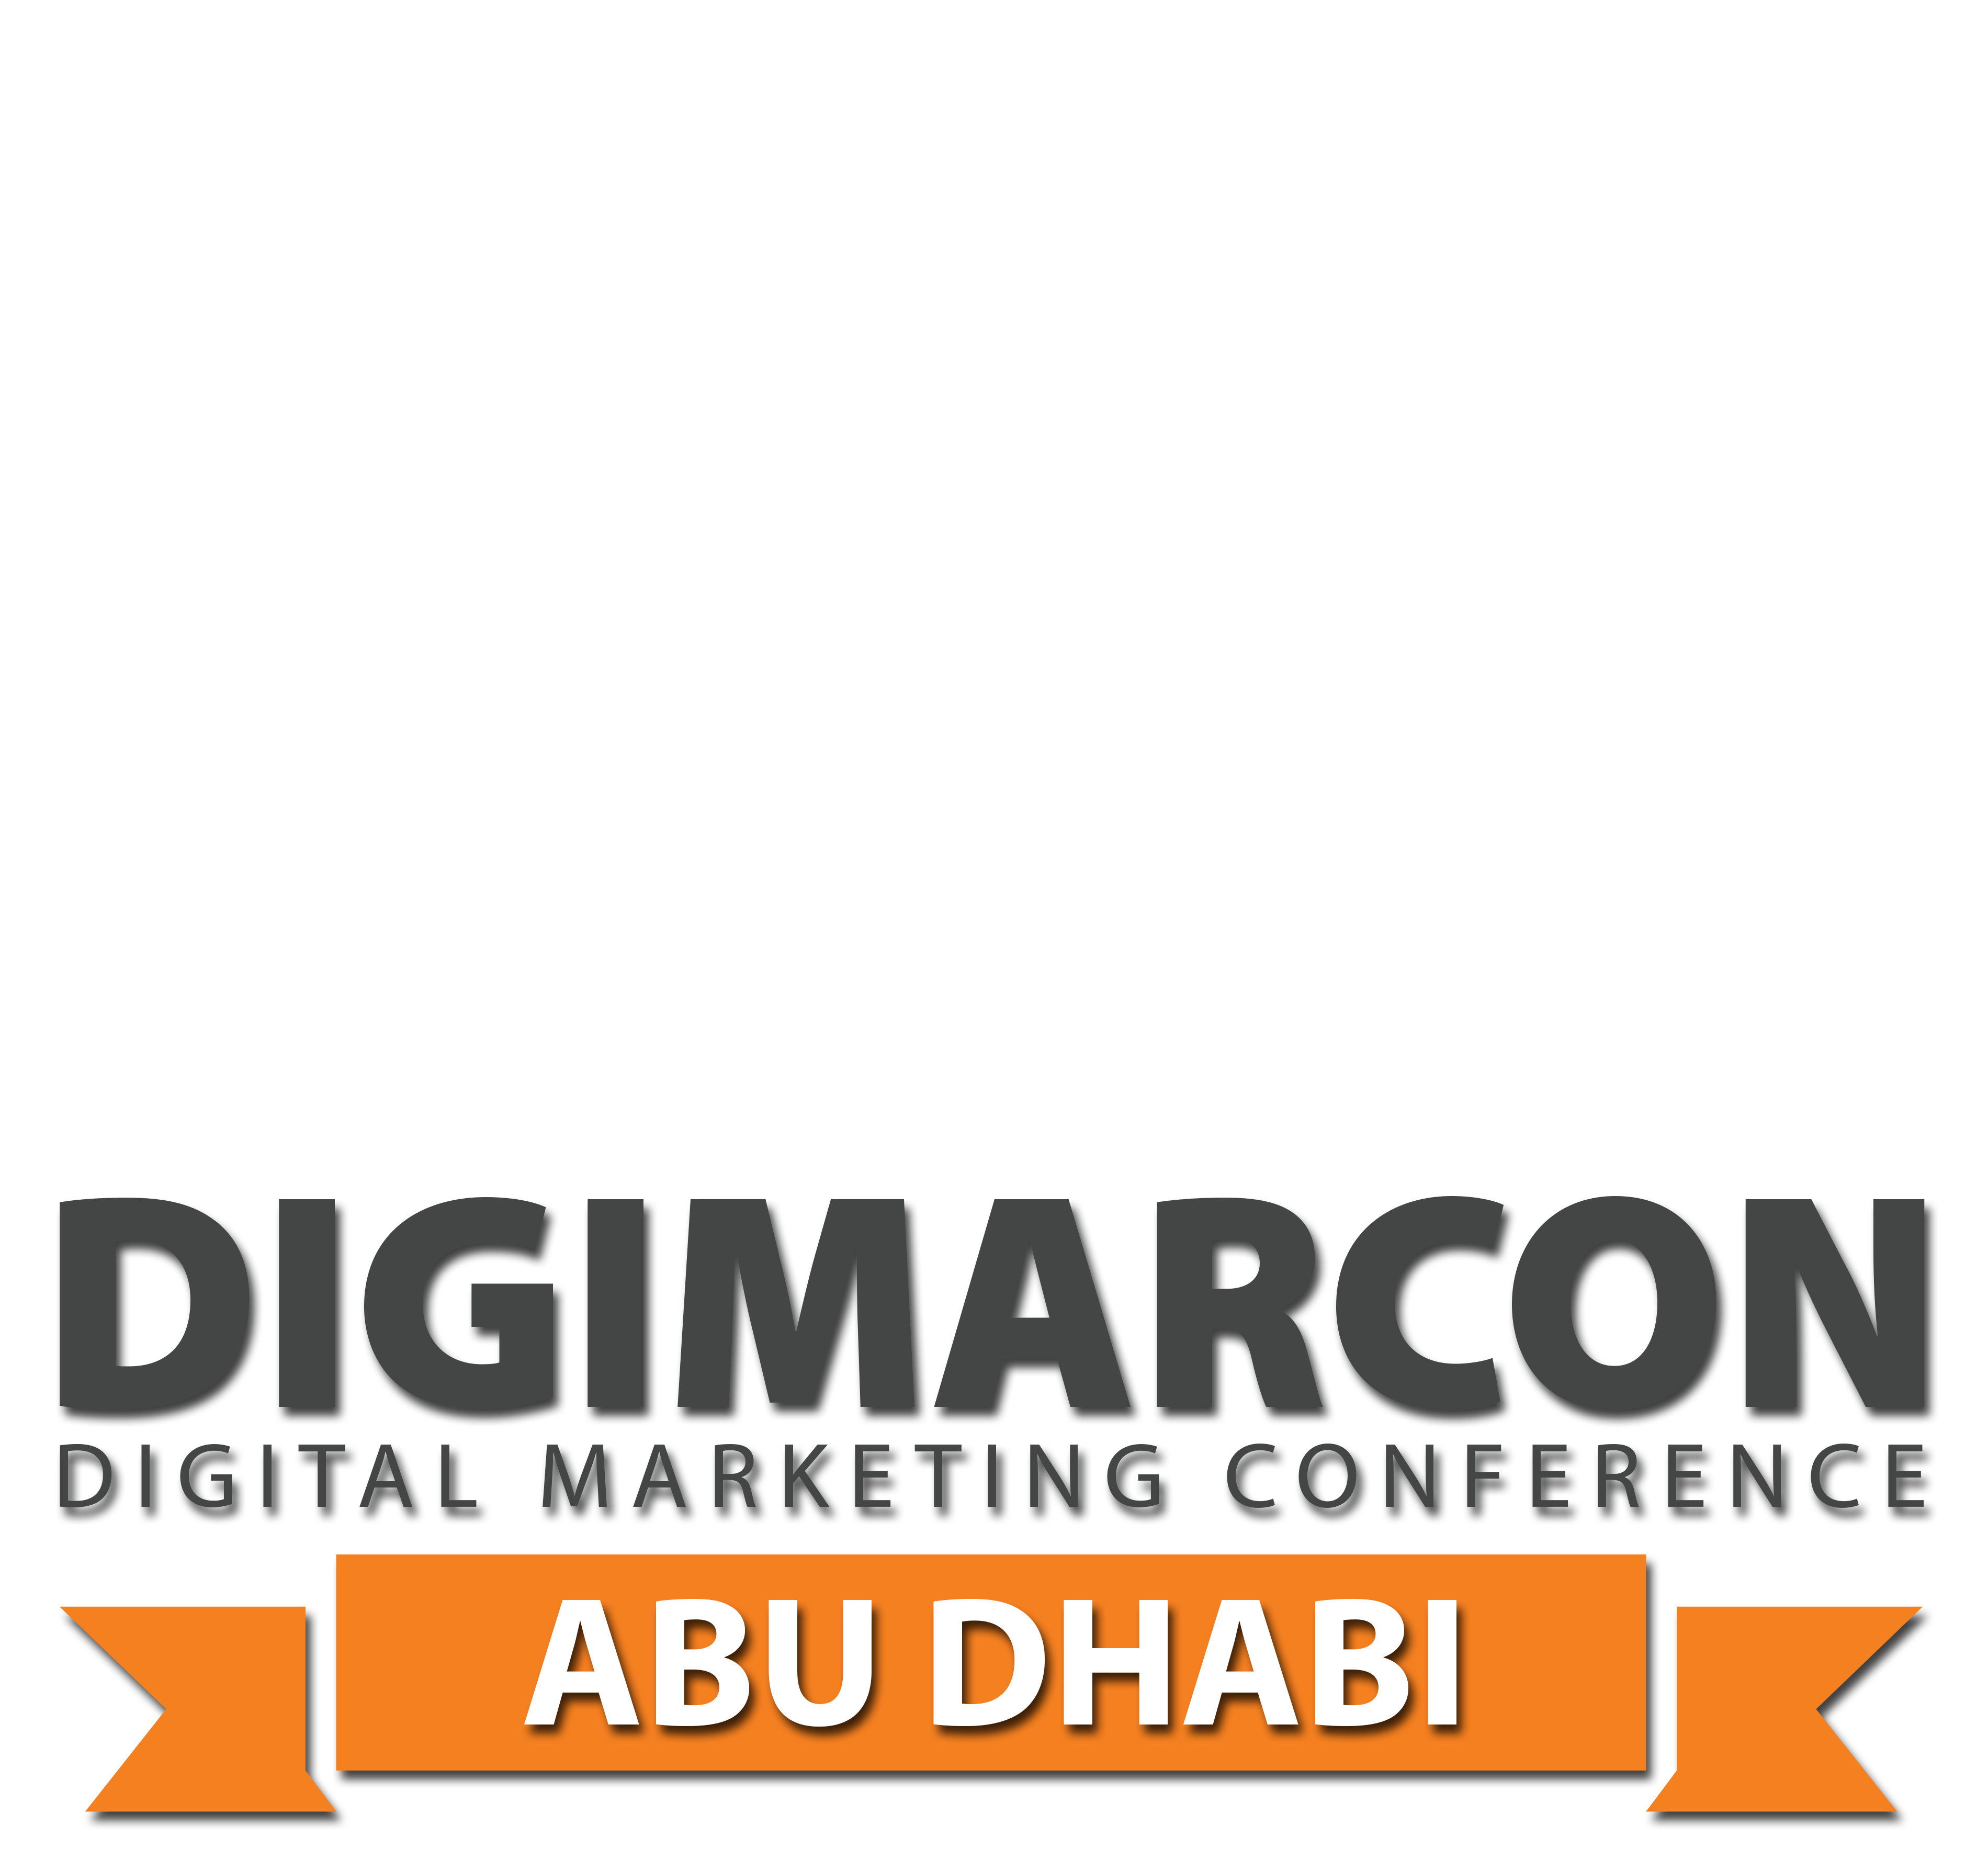 DigiMarCon Middle East – Digital Marketing, Media and Advertising Conference & Exhibition